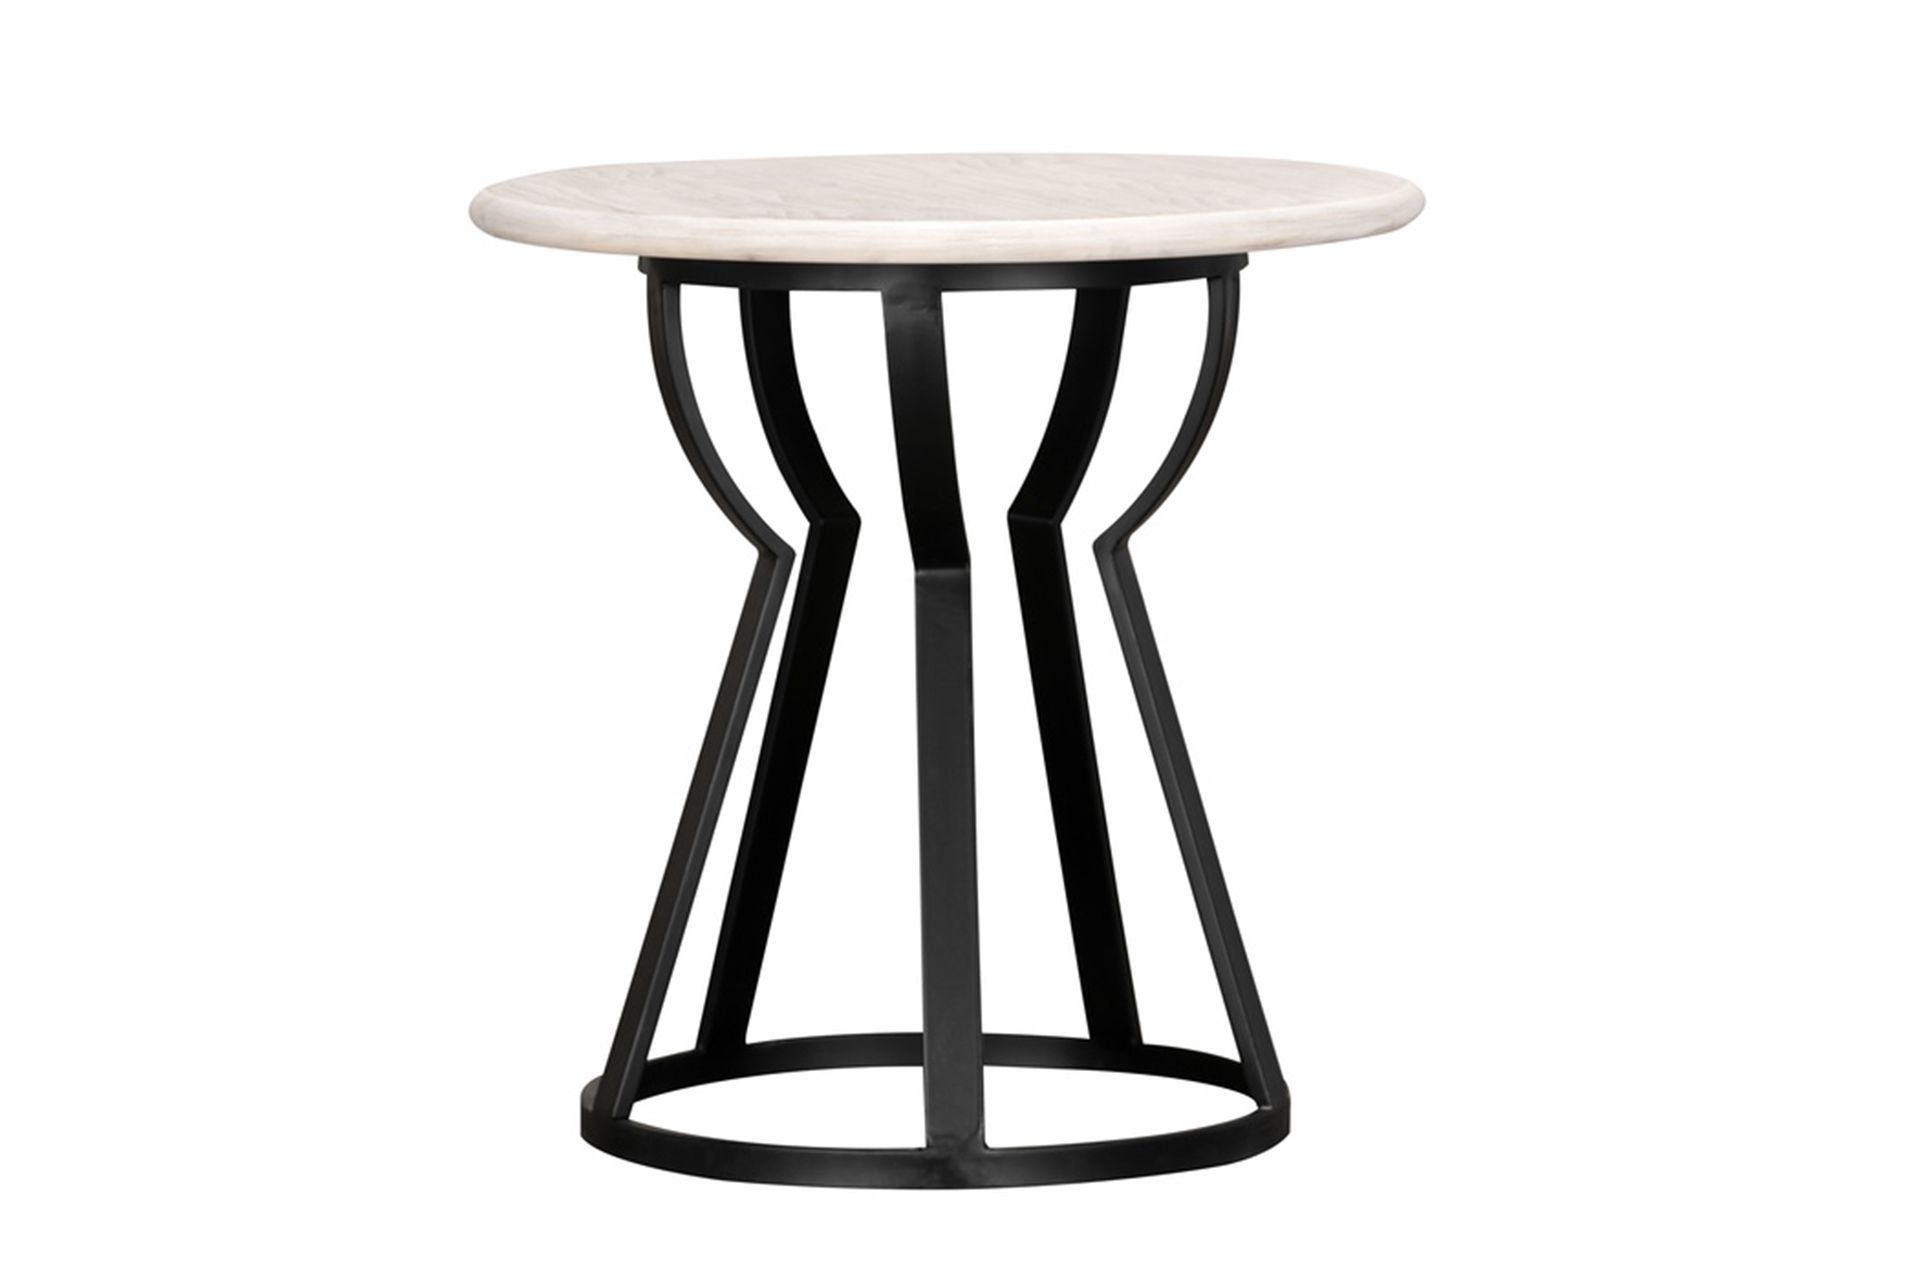 Magnolia Home Belford End Table By Joanna Gaines Magnolia Homes End Tables Magnolia Homes Living Room [ 1288 x 1911 Pixel ]